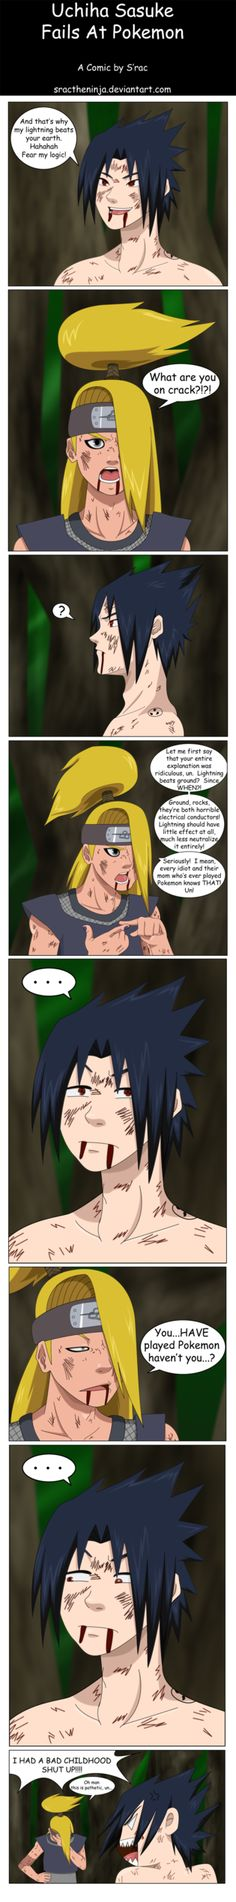 sasuke has never played pokemon :( by sractheninja on deviantart.com